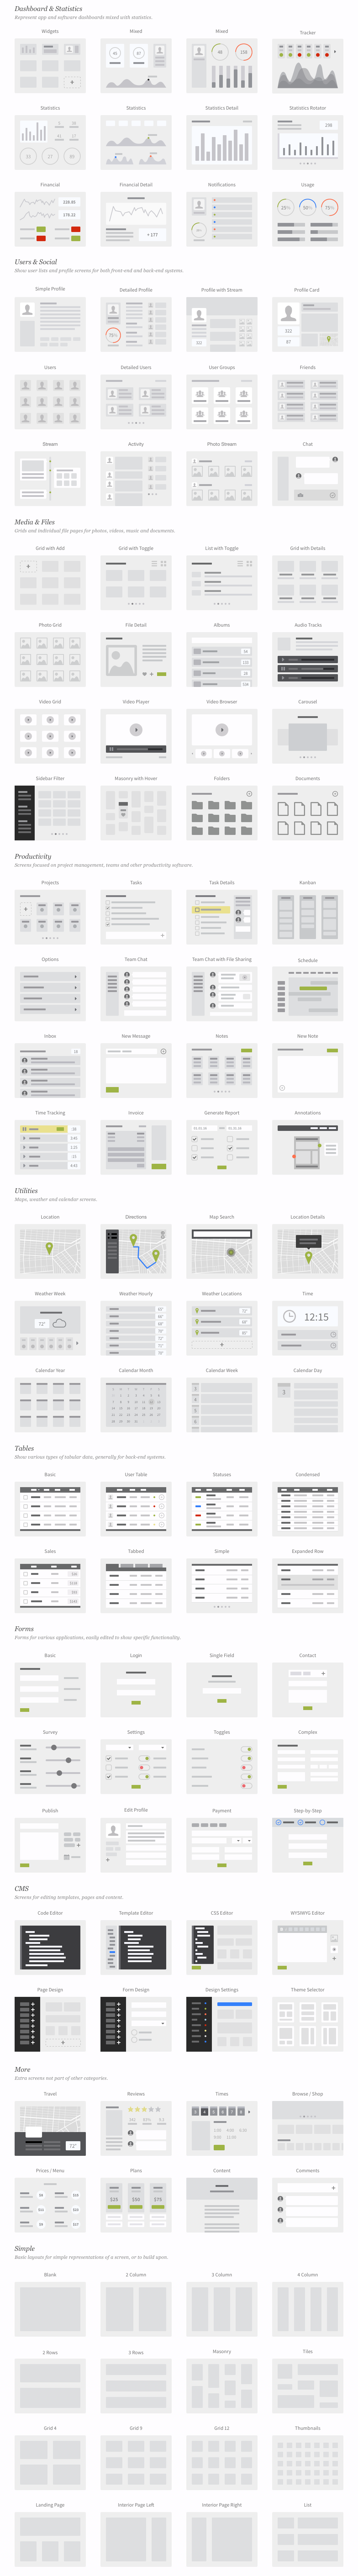 UX Kits UI Wireflows - Architecture, layout and flow for software interfaces.